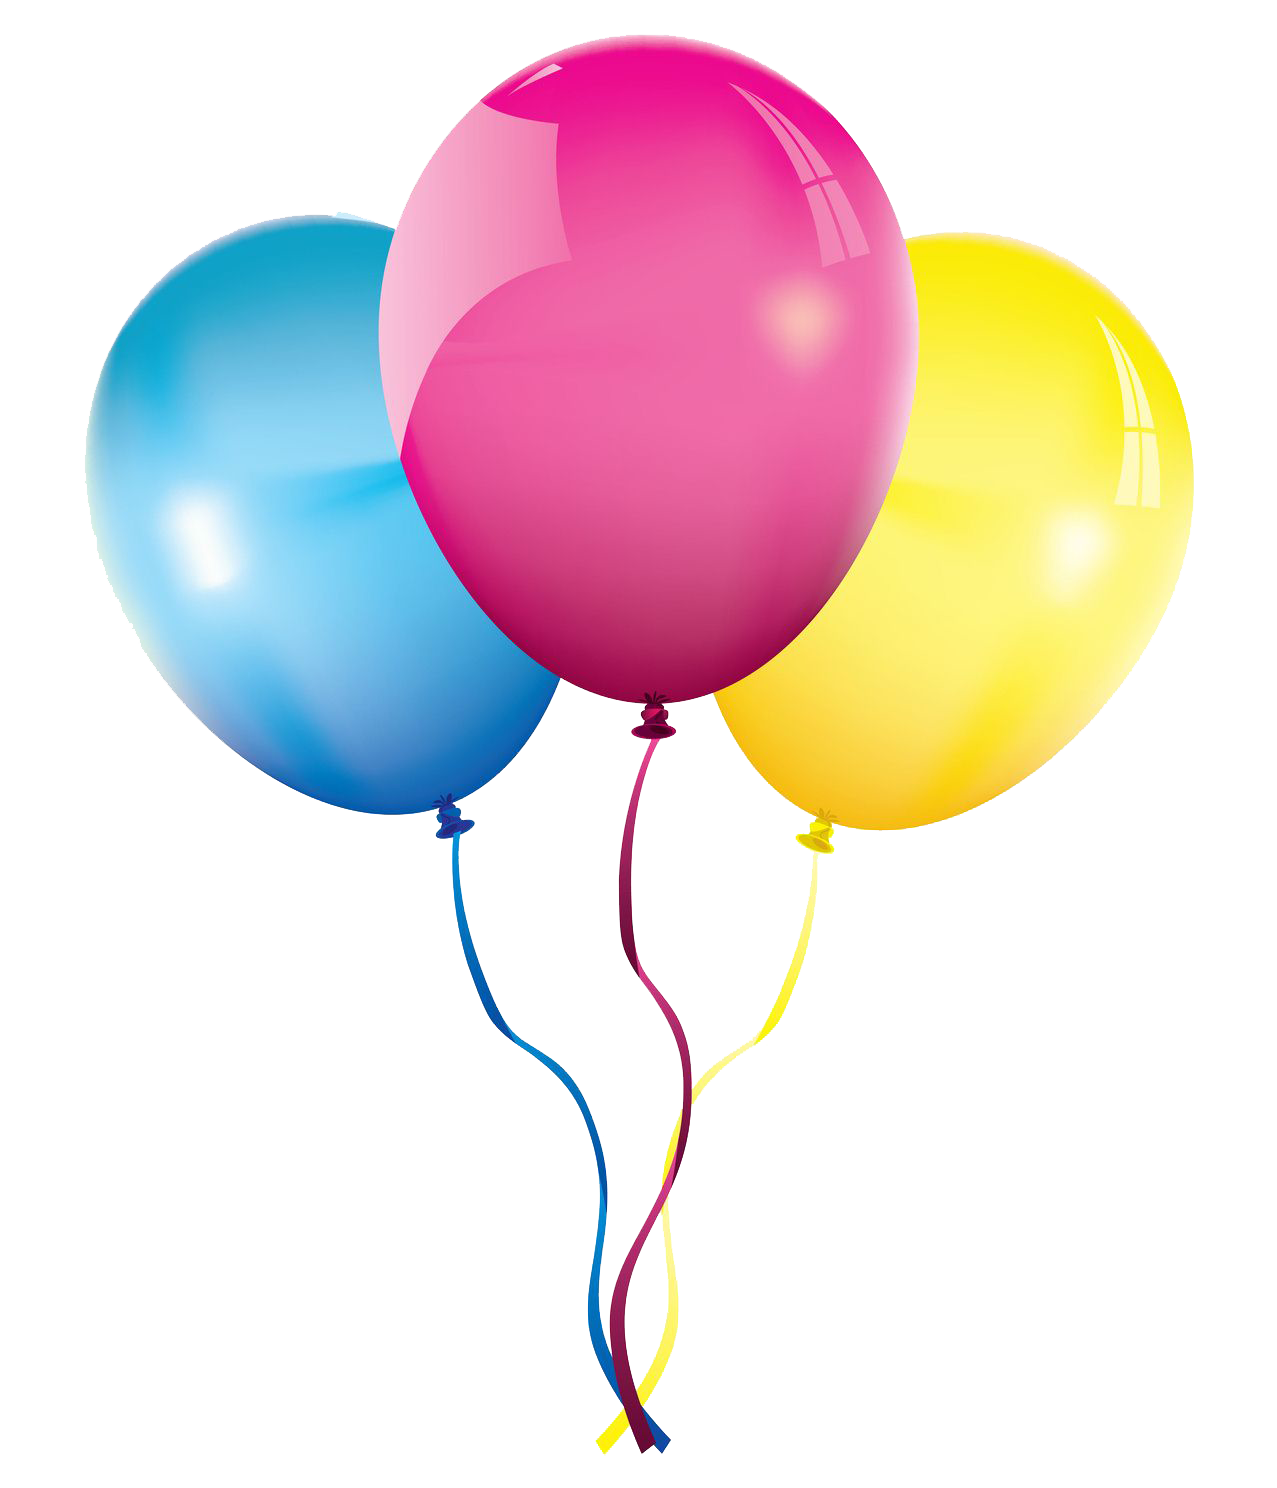 Balloons .png. Png images transparent free